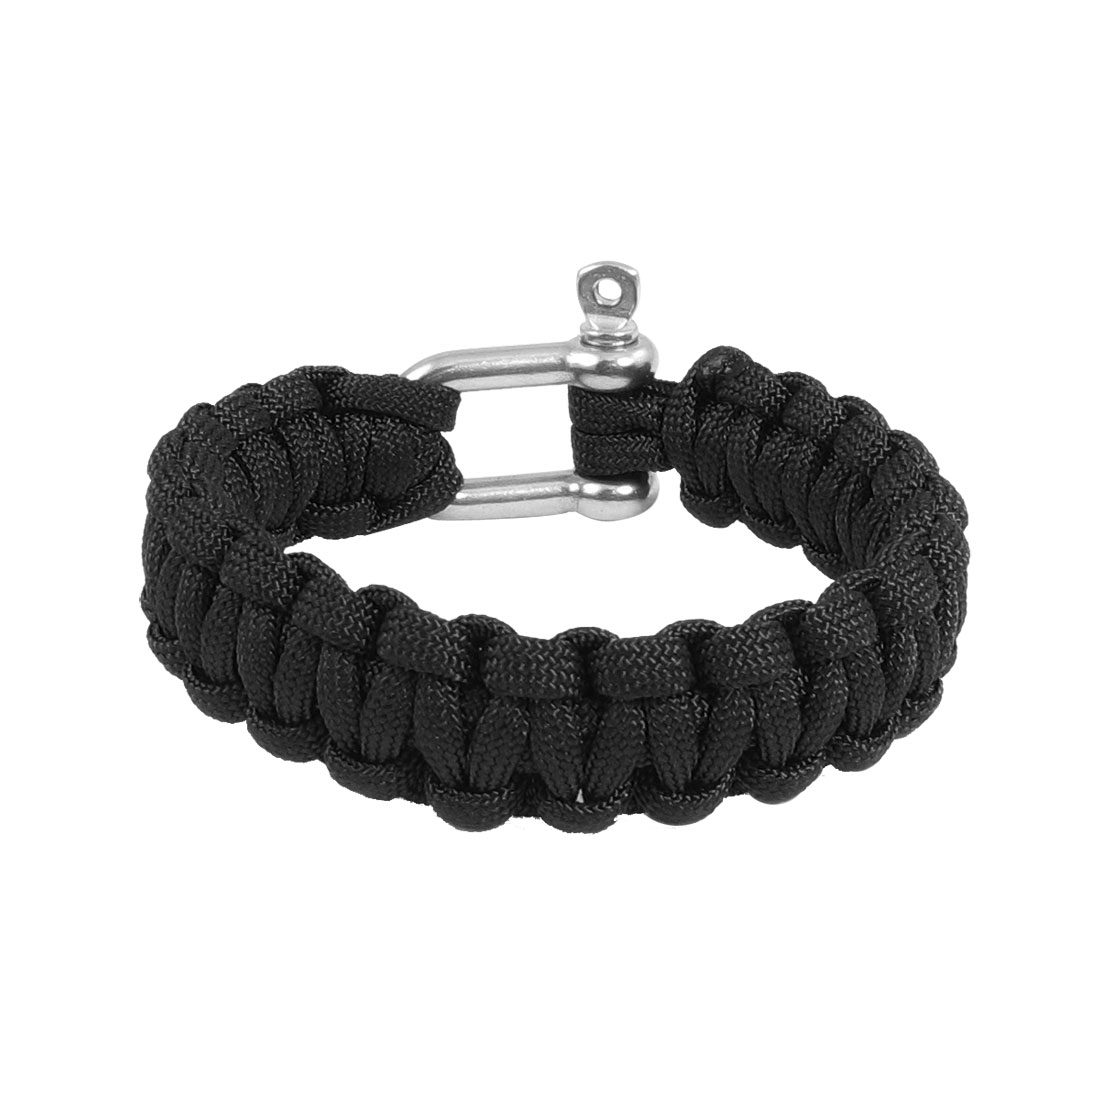 Daily Life Decor Stainless Steel Black Cobra Weave Nylon Cord Survival Bracelet